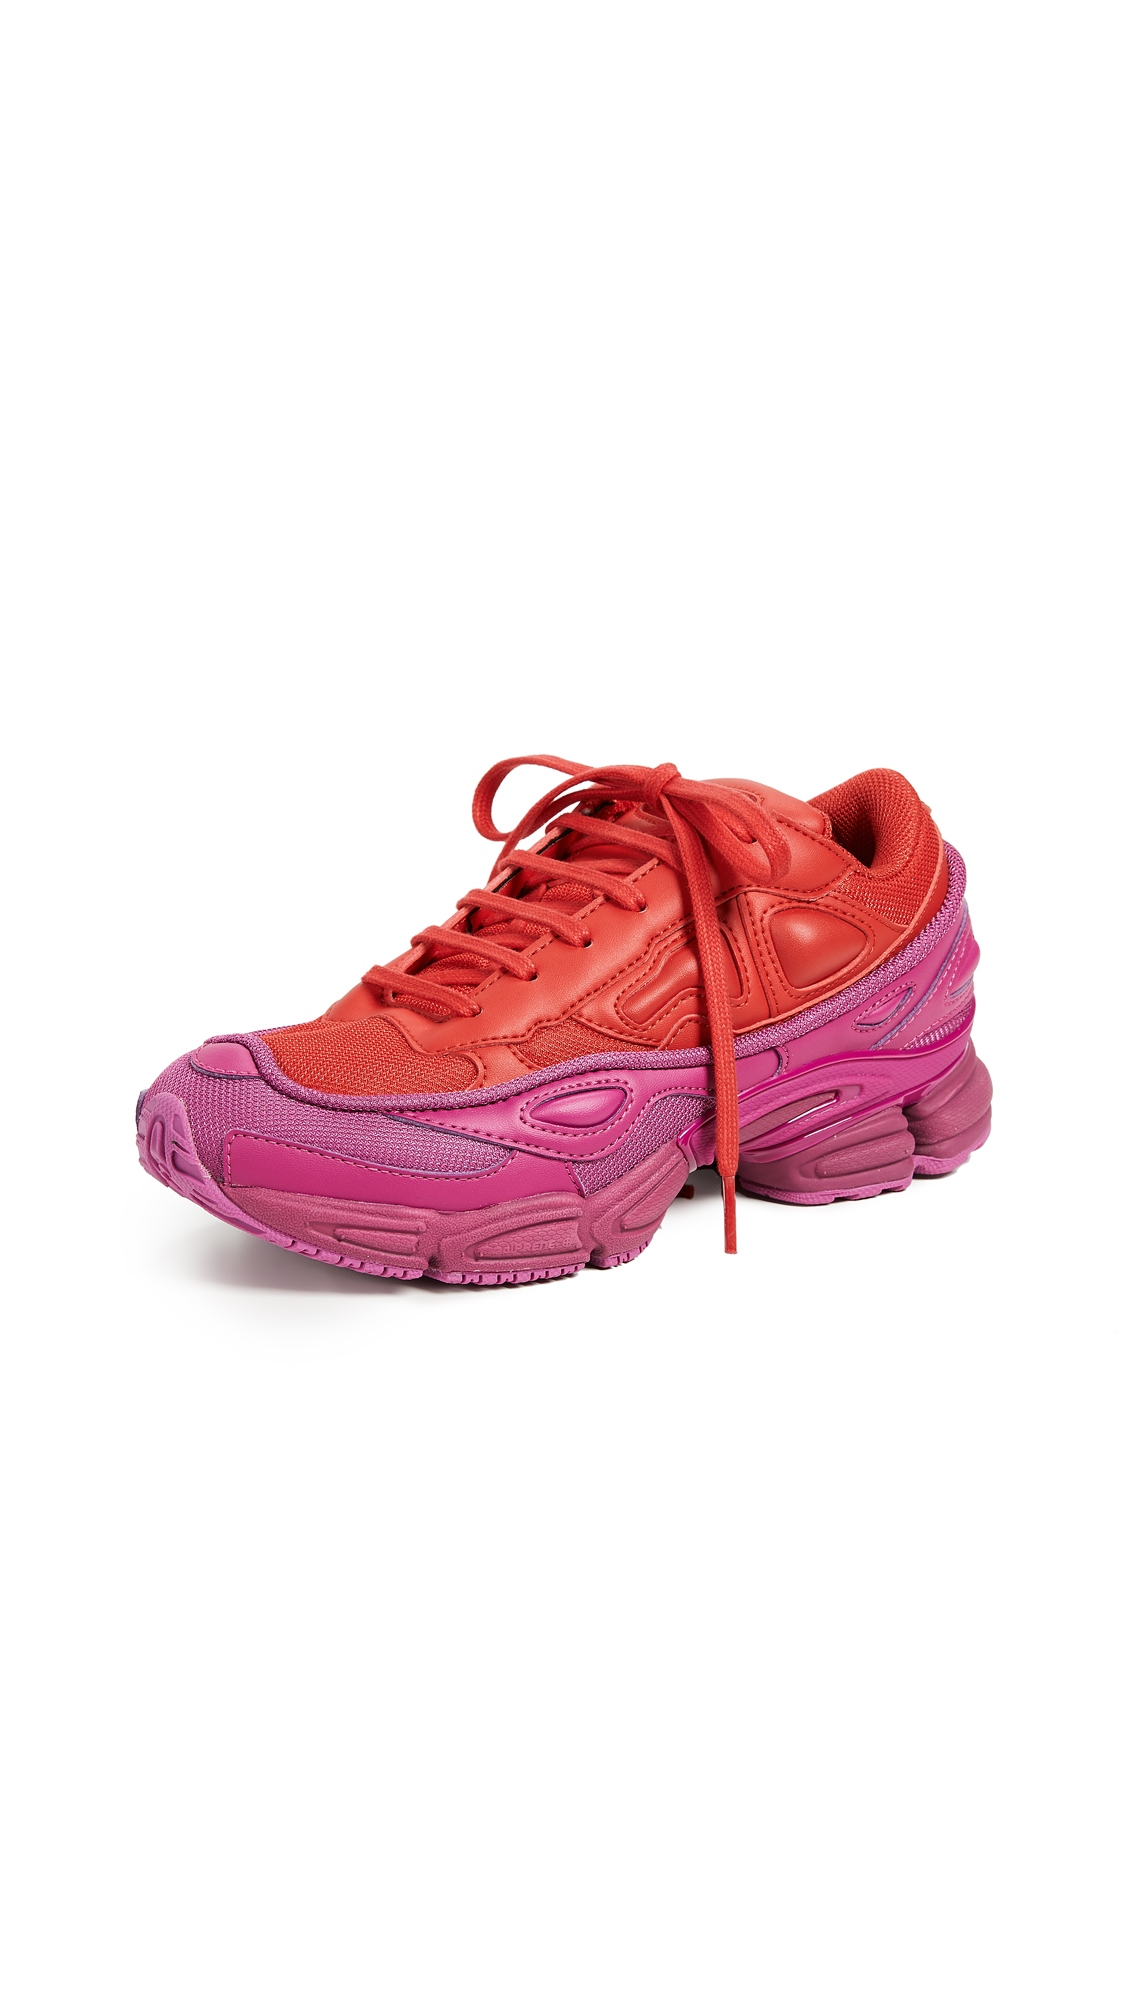 Adidas Raf Simons Ozweego Sneakers - Glory/Collegiate Red